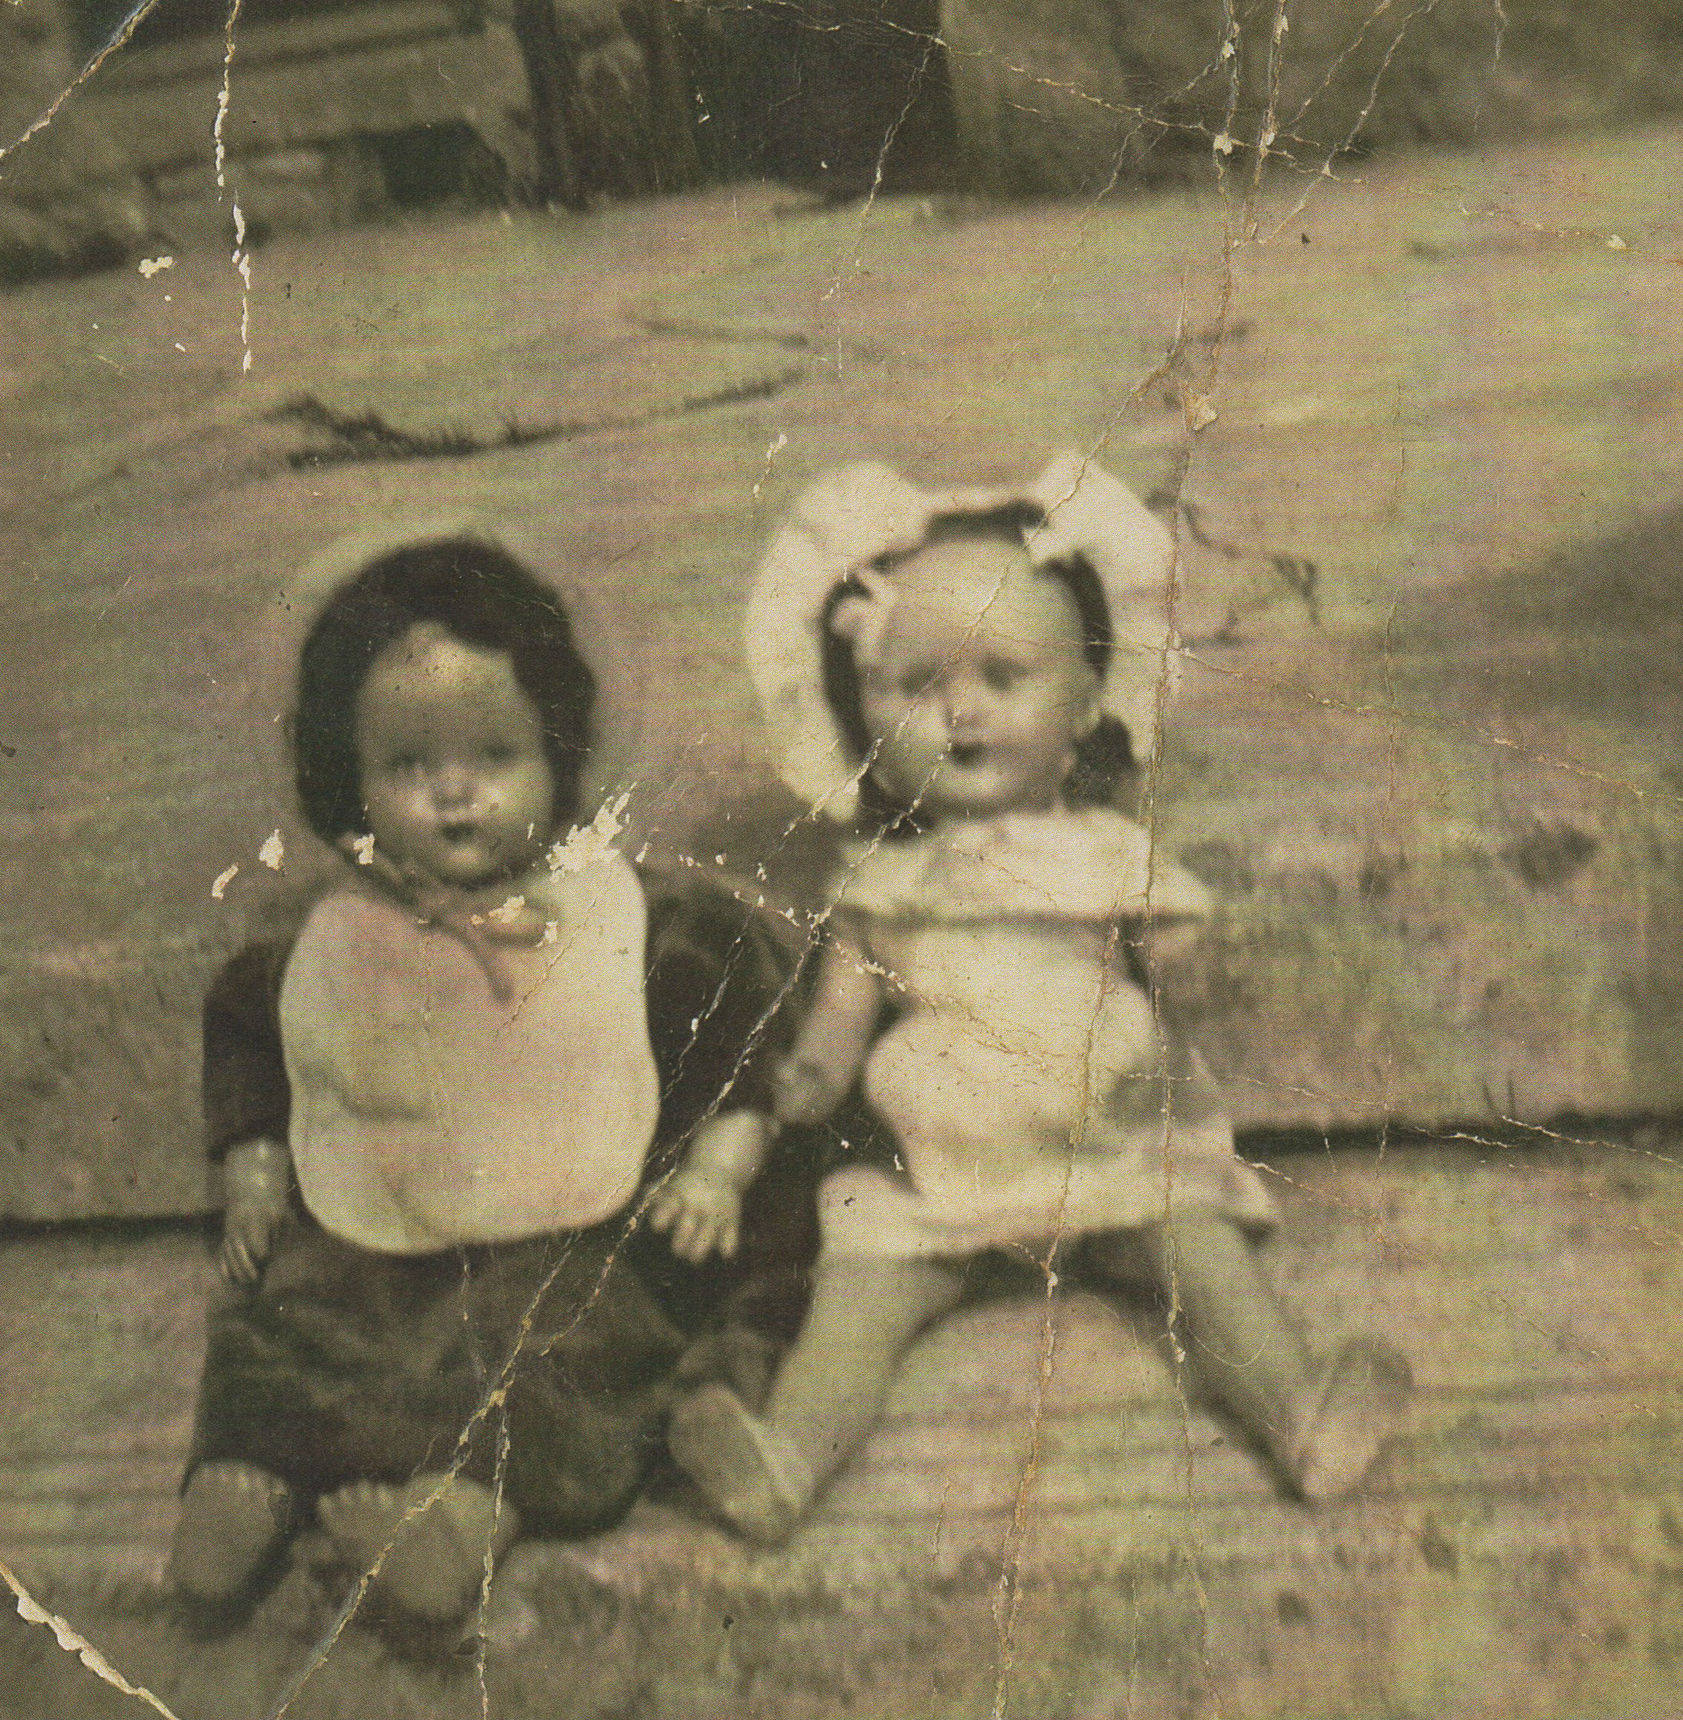 My Doll on the right was called Polly.